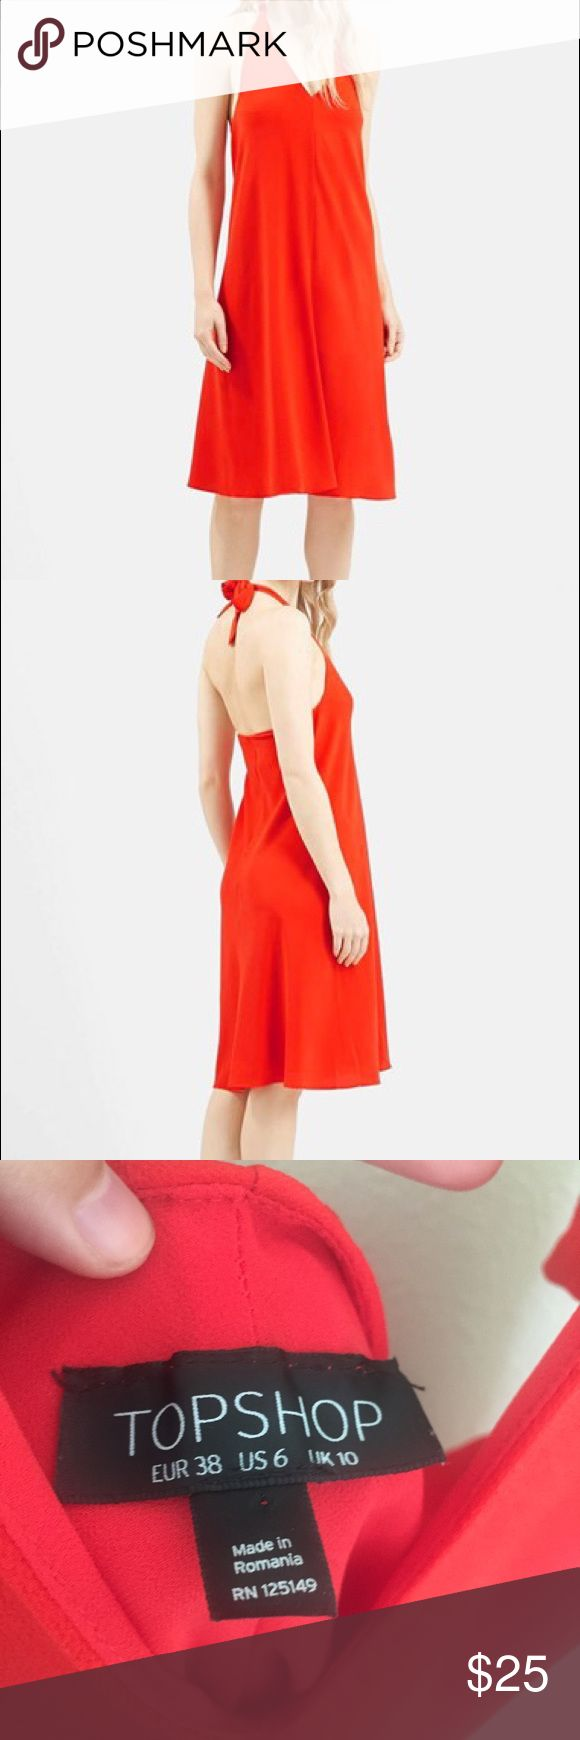 """~Sale~ Topshop Red V-Neck Halter Midi Dress Size 6. Red dress from Topshop with a v-neck line. Halter style in the back do length can be changed as desired. Back is open as well. This dress is perfect for dates or any occasion. It has only been worn once!   Measurements:   Length - 42"""" from the shoulder seam where the Halter straps meet  Bust - 17"""" lying flat  Waist - 19"""" lying flat Hips - 22.5"""" lying flat Topshop Dresses Midi"""